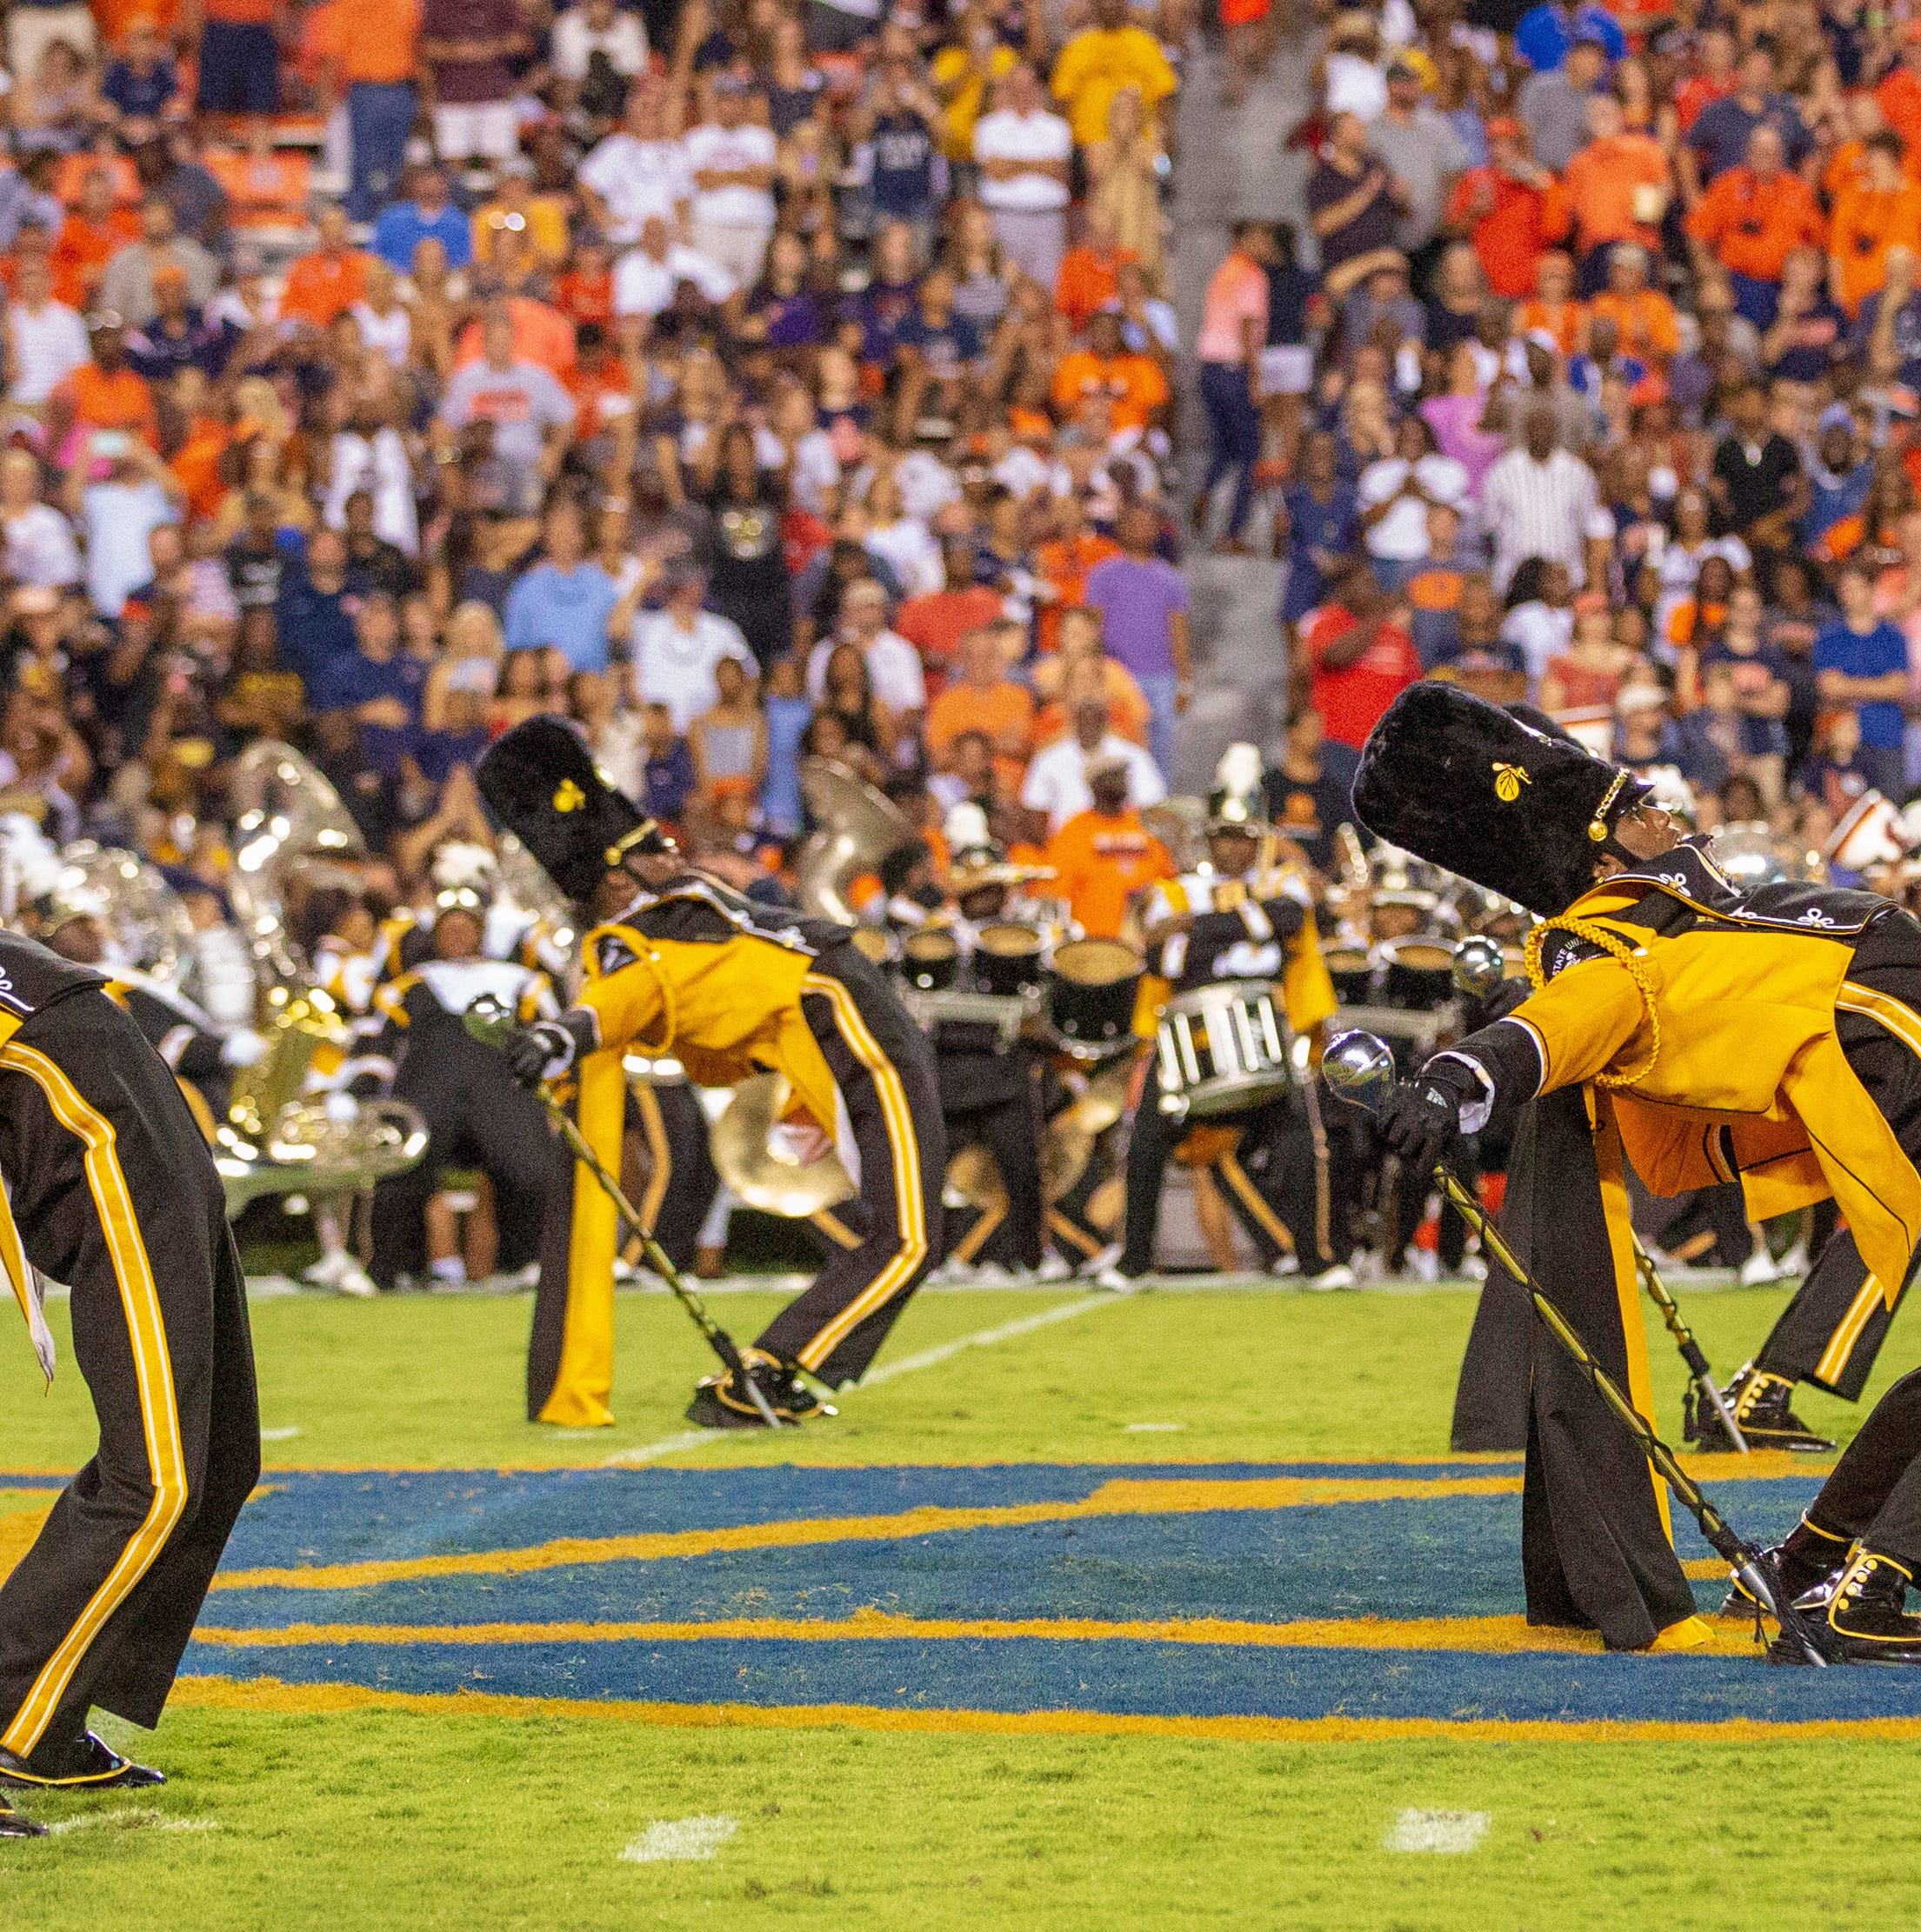 Fly and Mighty: ASU's Marching Hornets rule the field, week after week